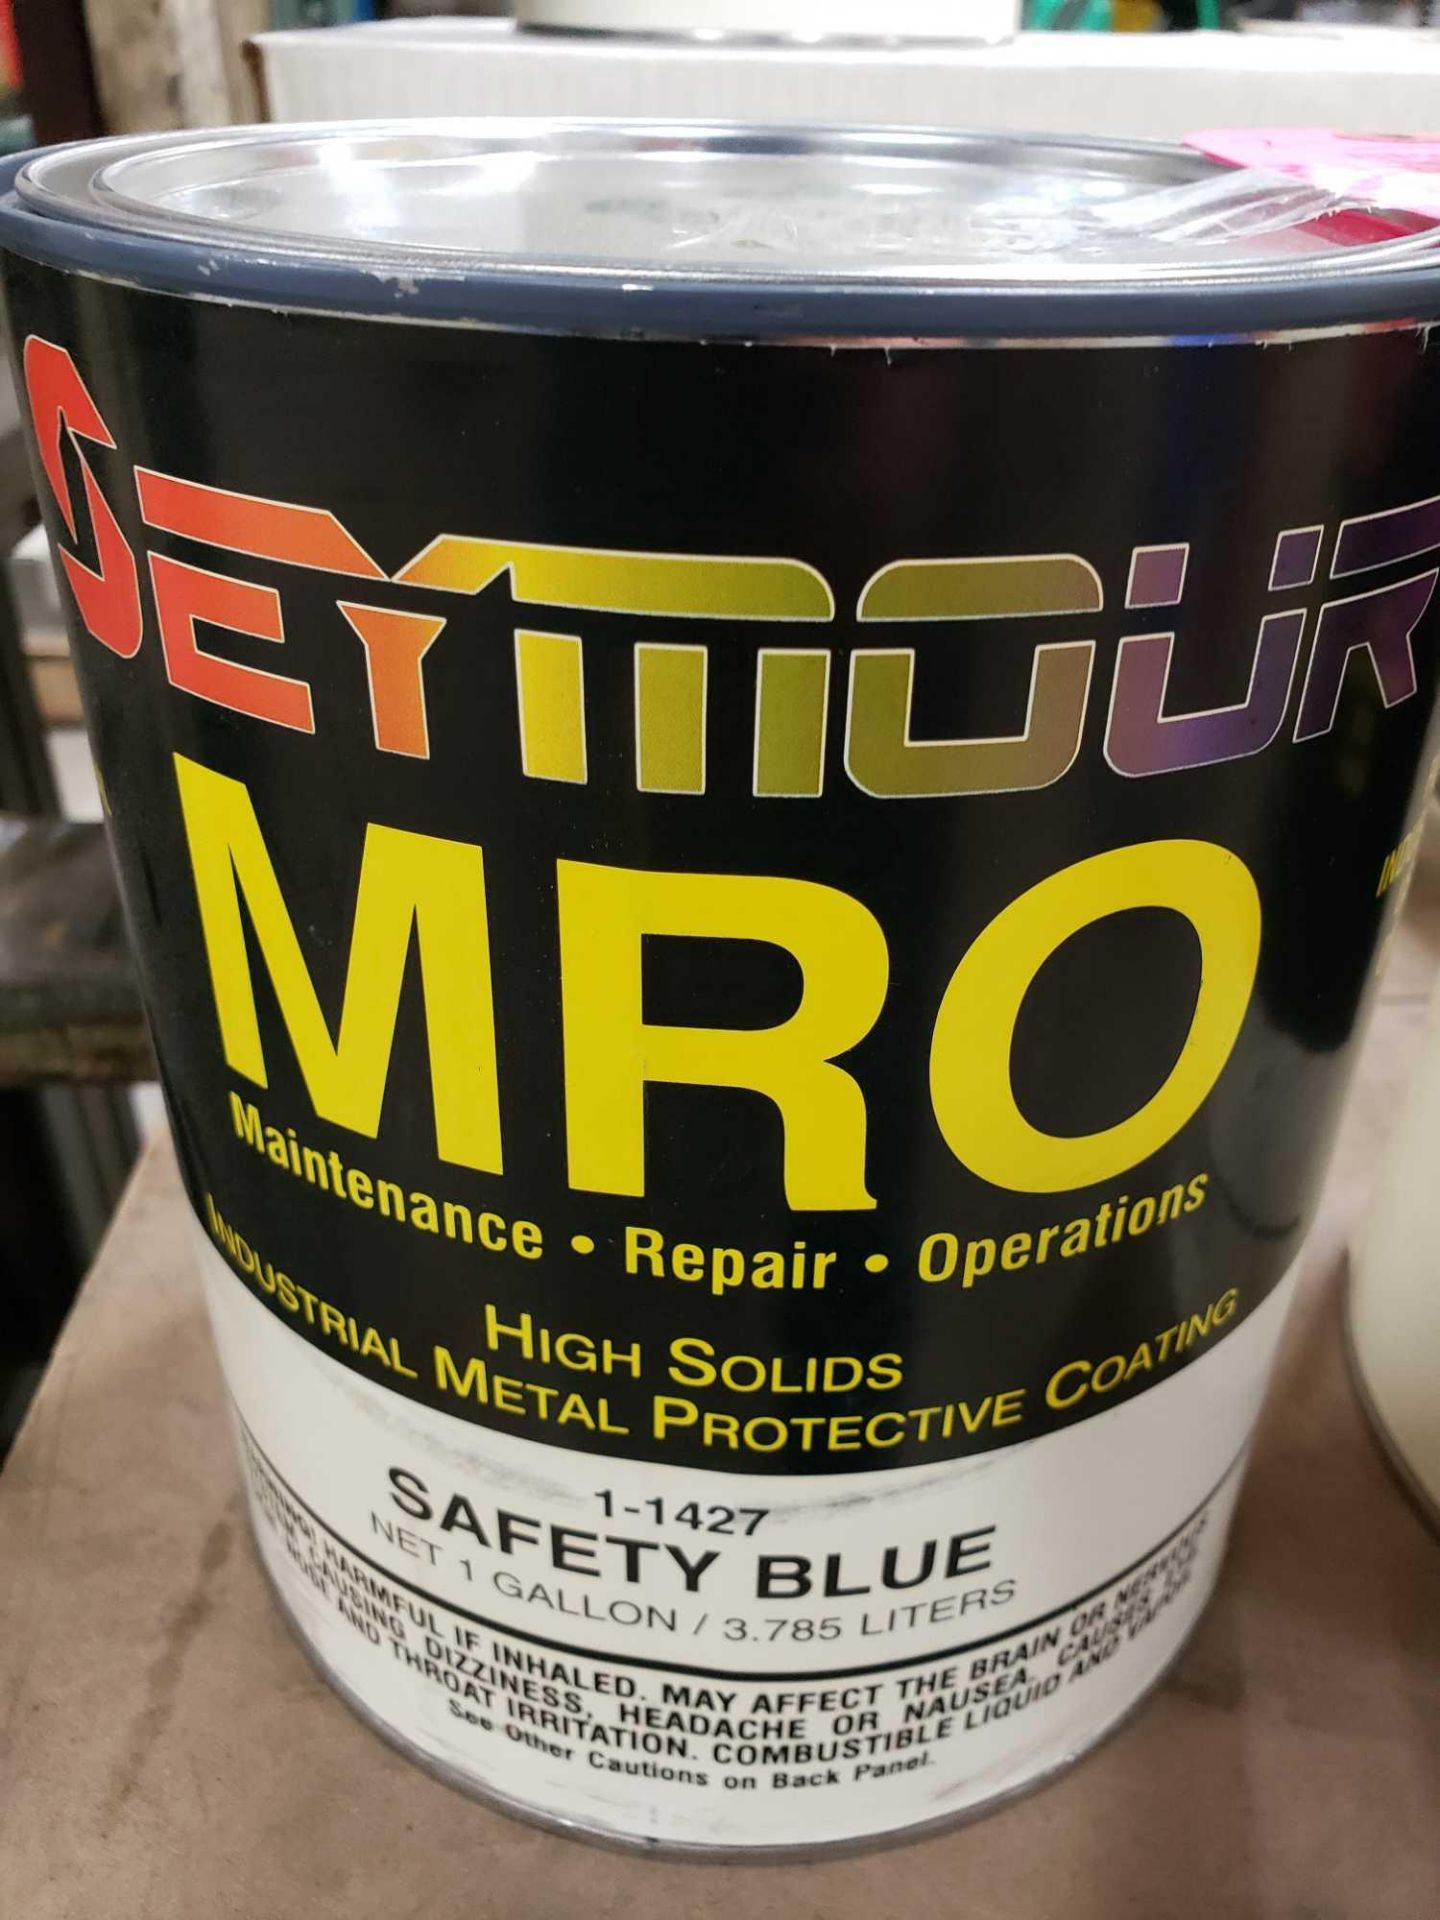 Lot 14 - Qty 2 - Seymour MRO paint Gloss Safety Blue model 1-1427. New as pictured.